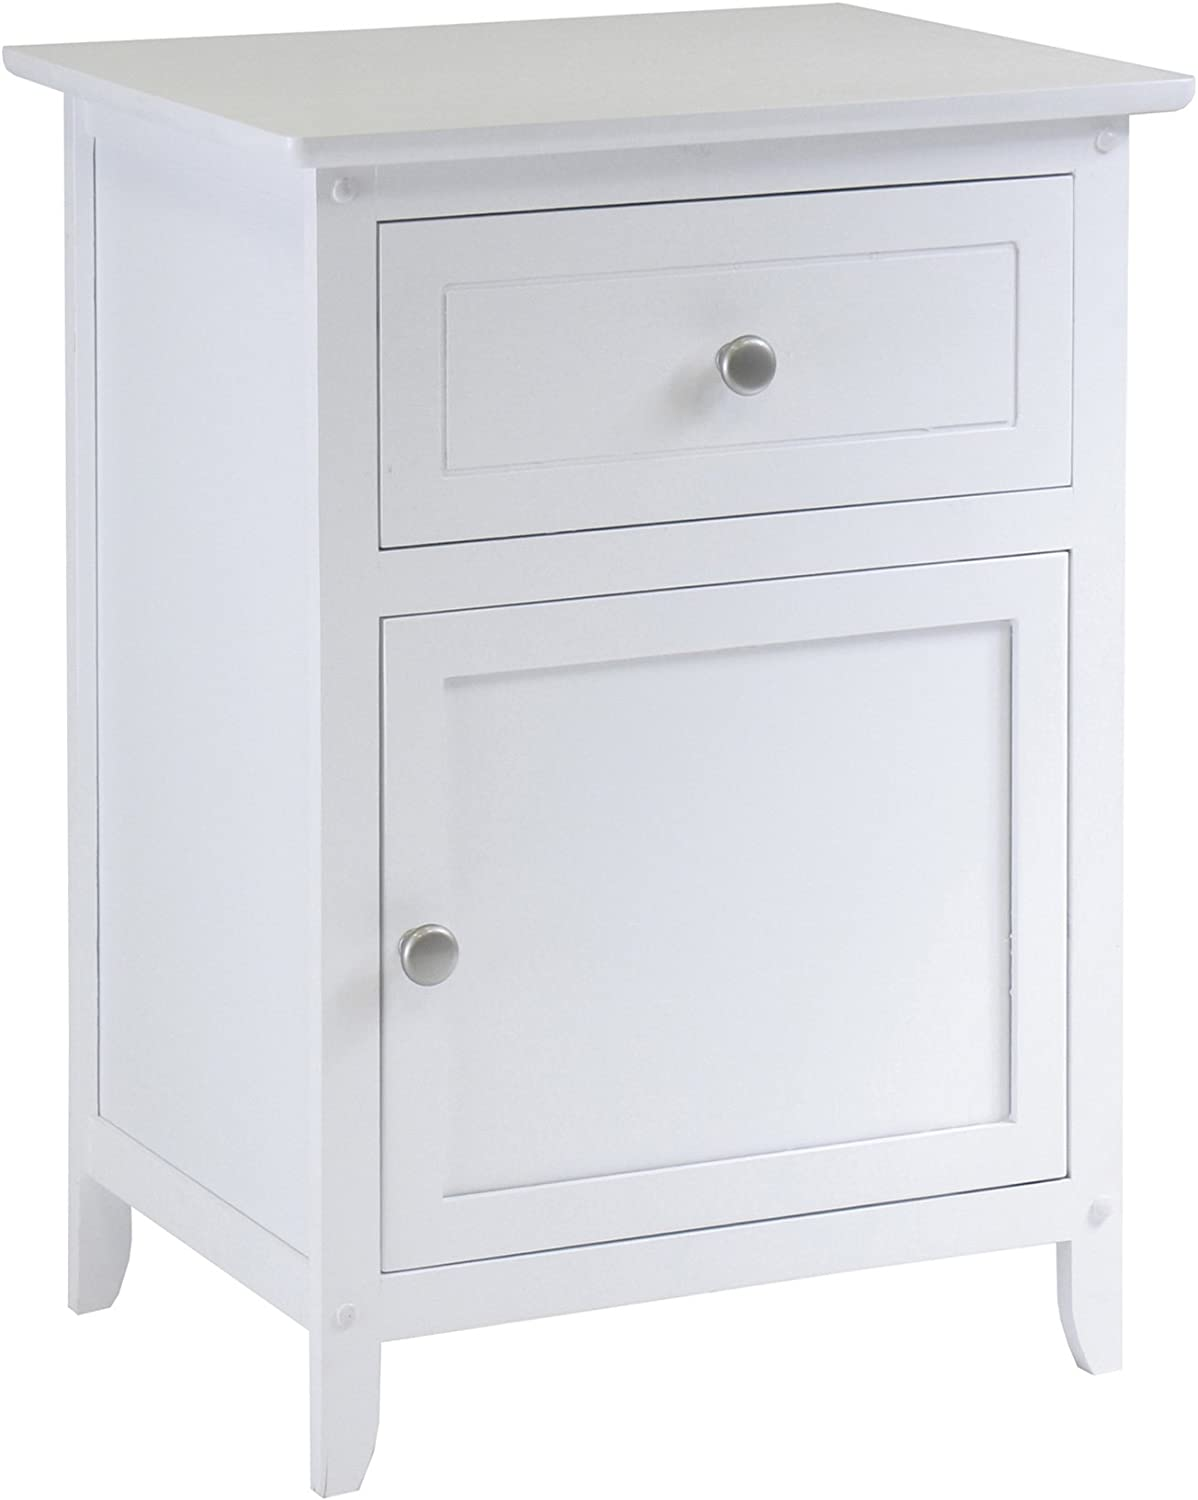 Winsome Wood Night Stand Accent Table with Drawer and Cabinet for Storage, White